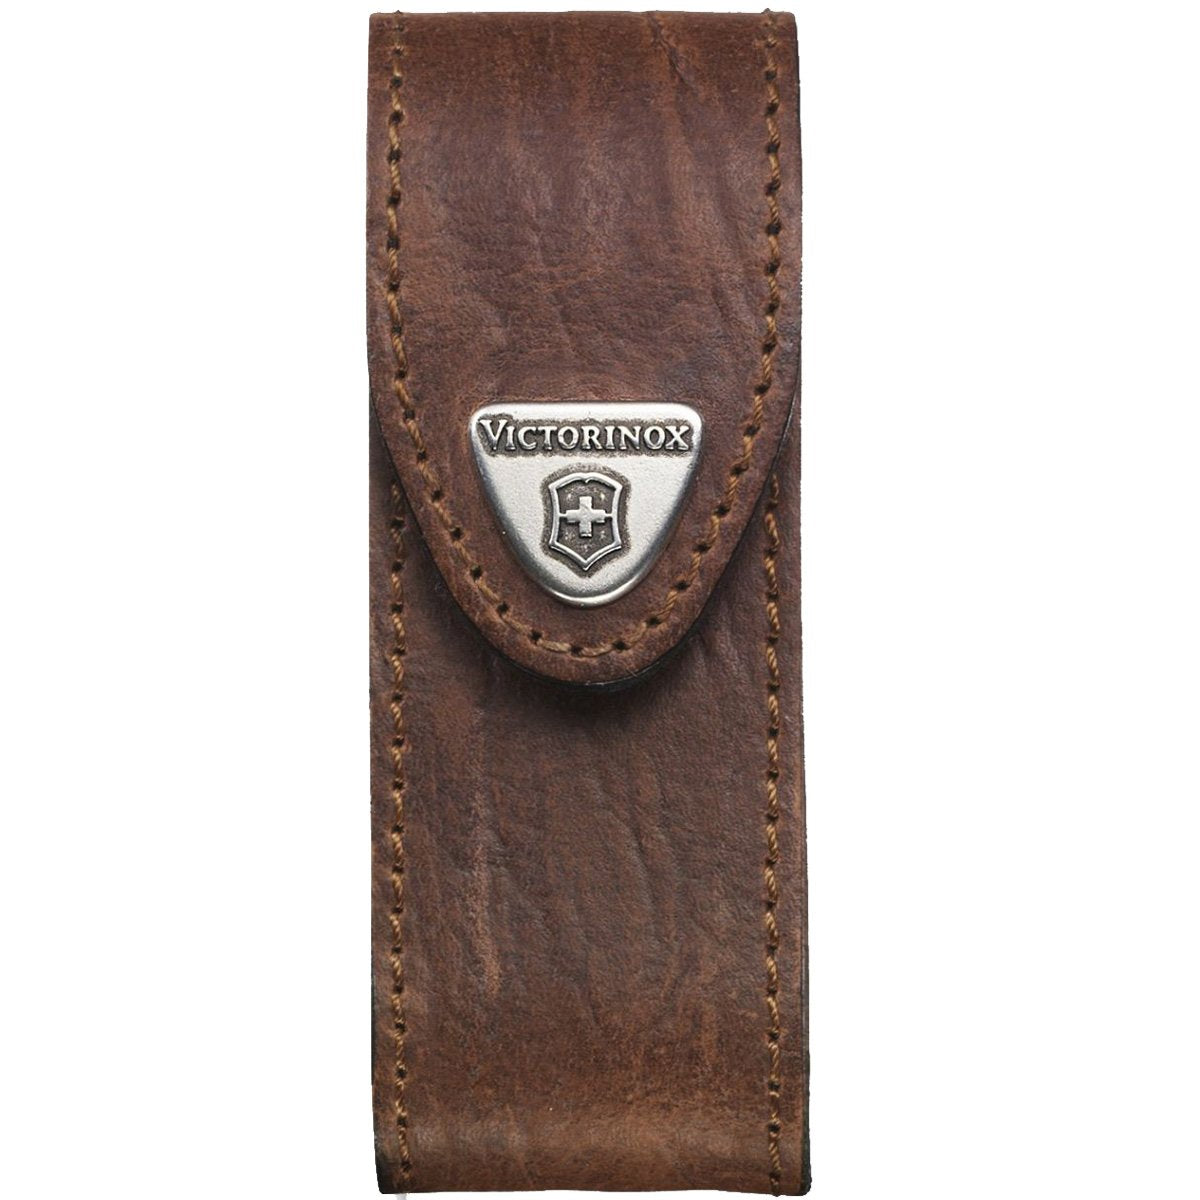 Victorinox Pouch Brown Leather